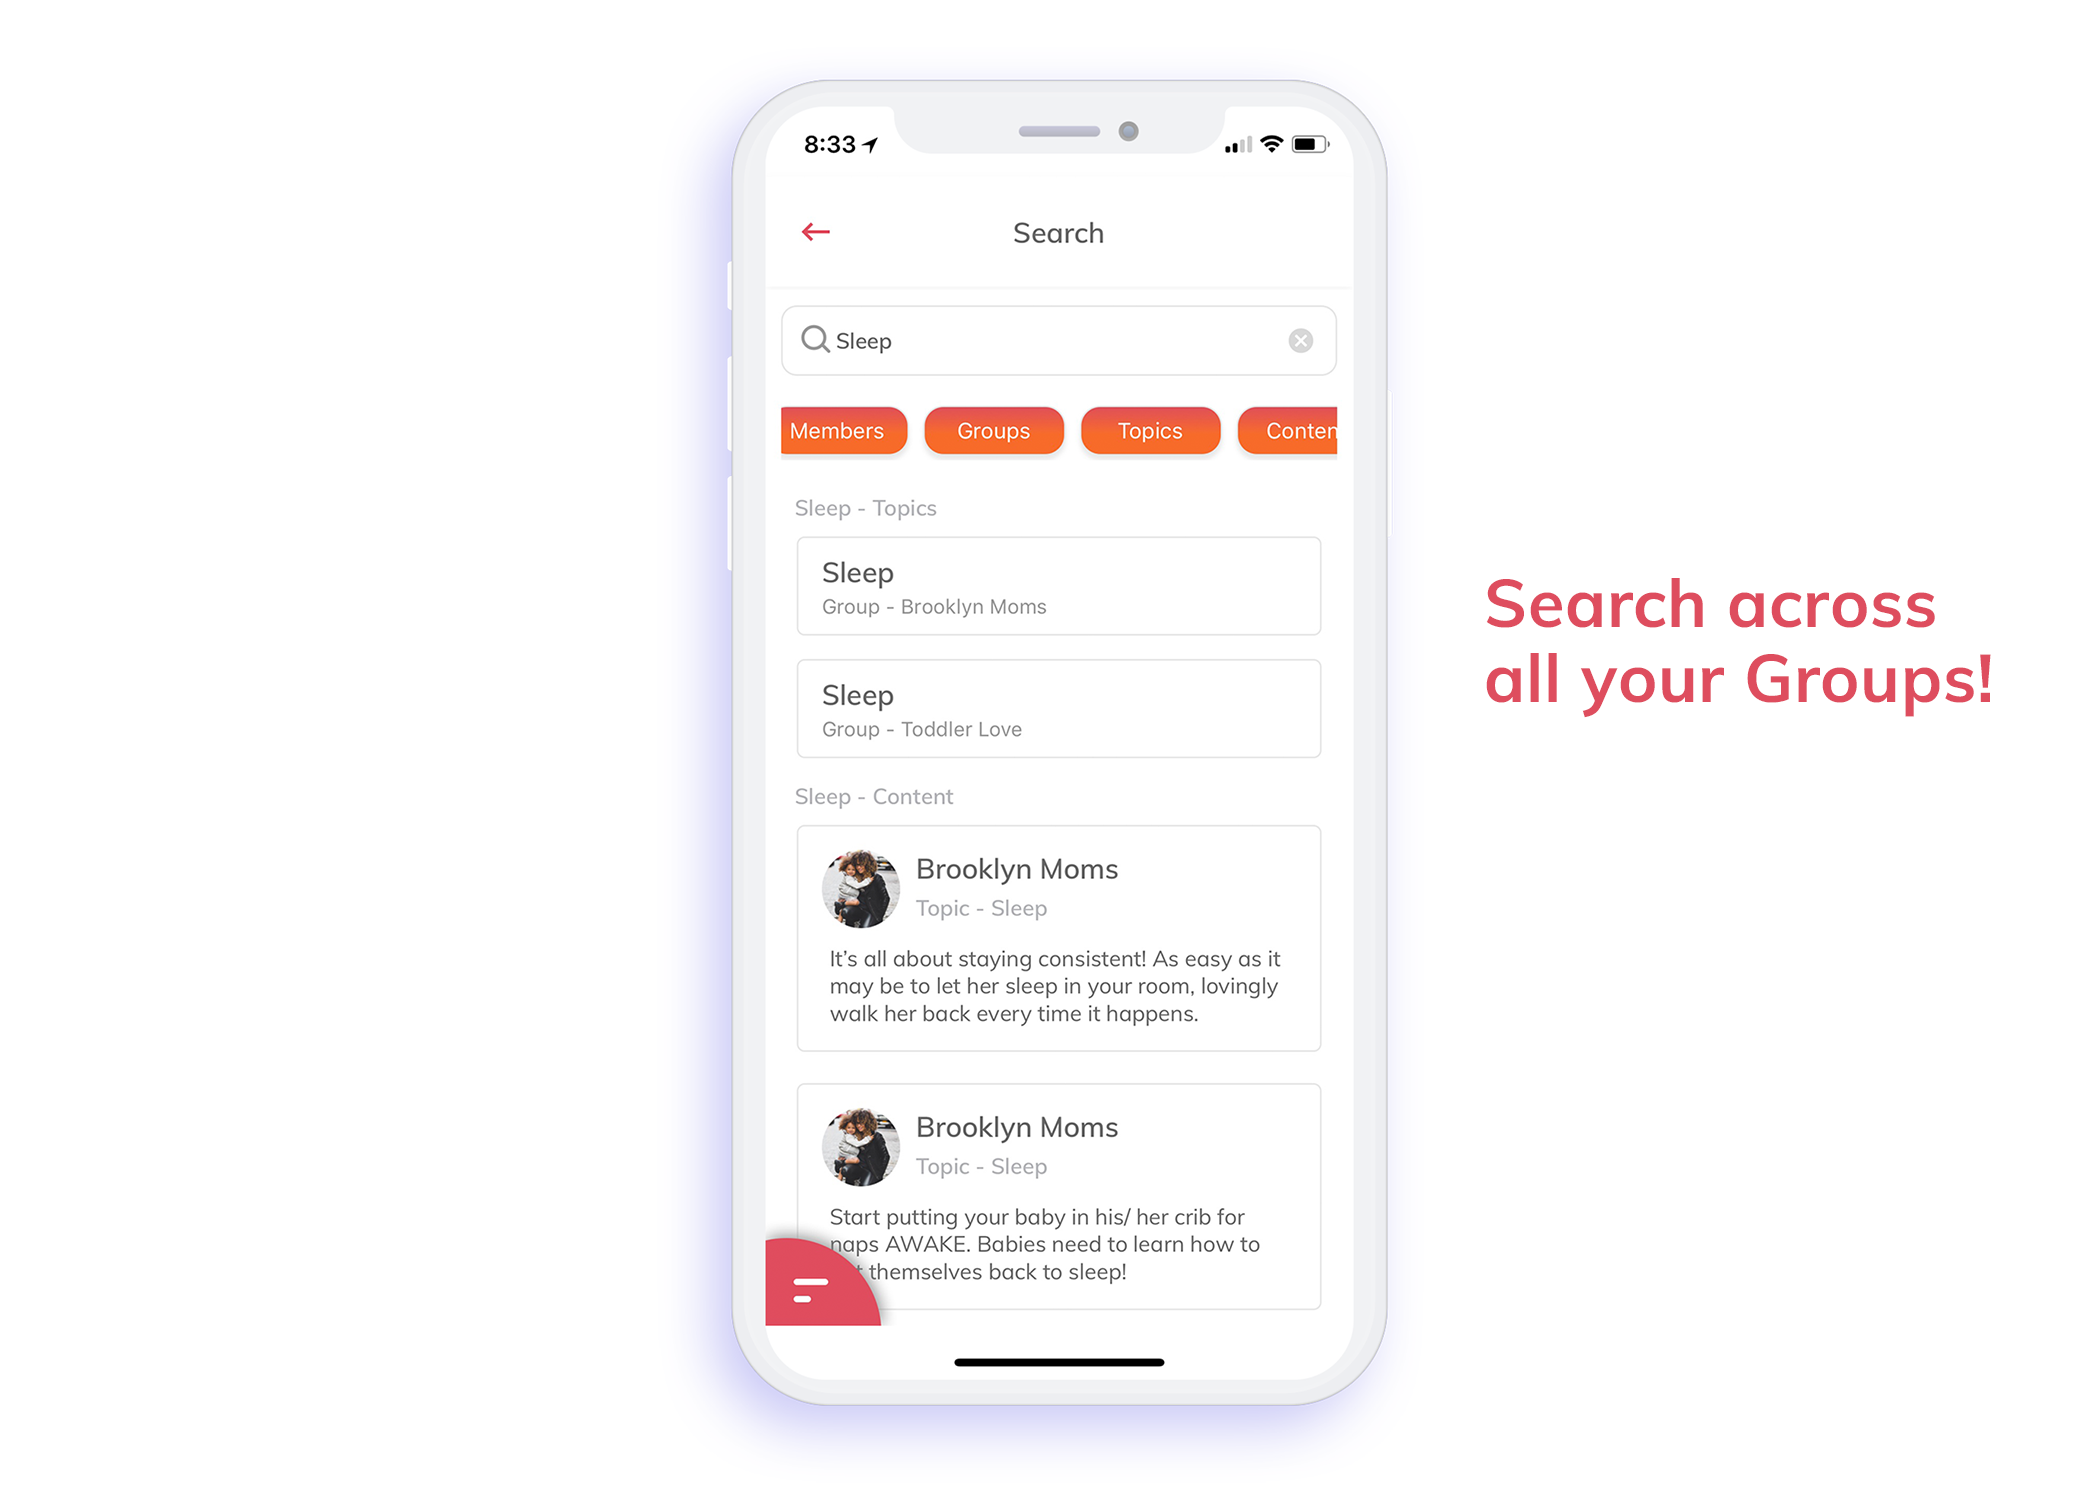 Search across all your Groups